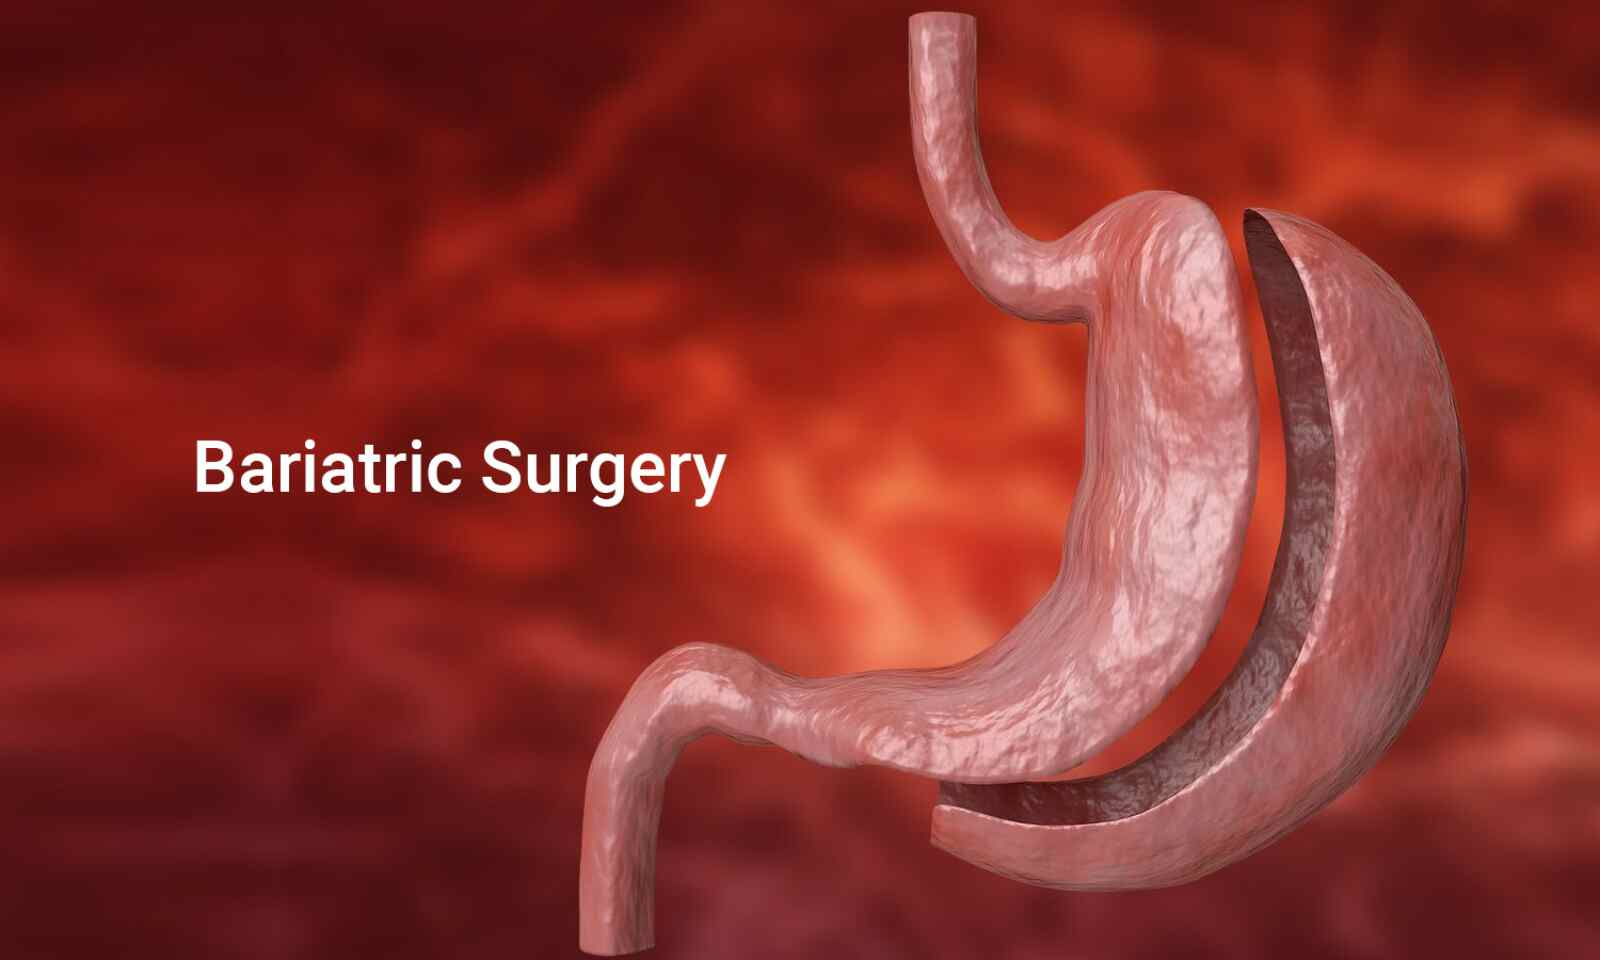 Bariatric surgery may increase fracture risk